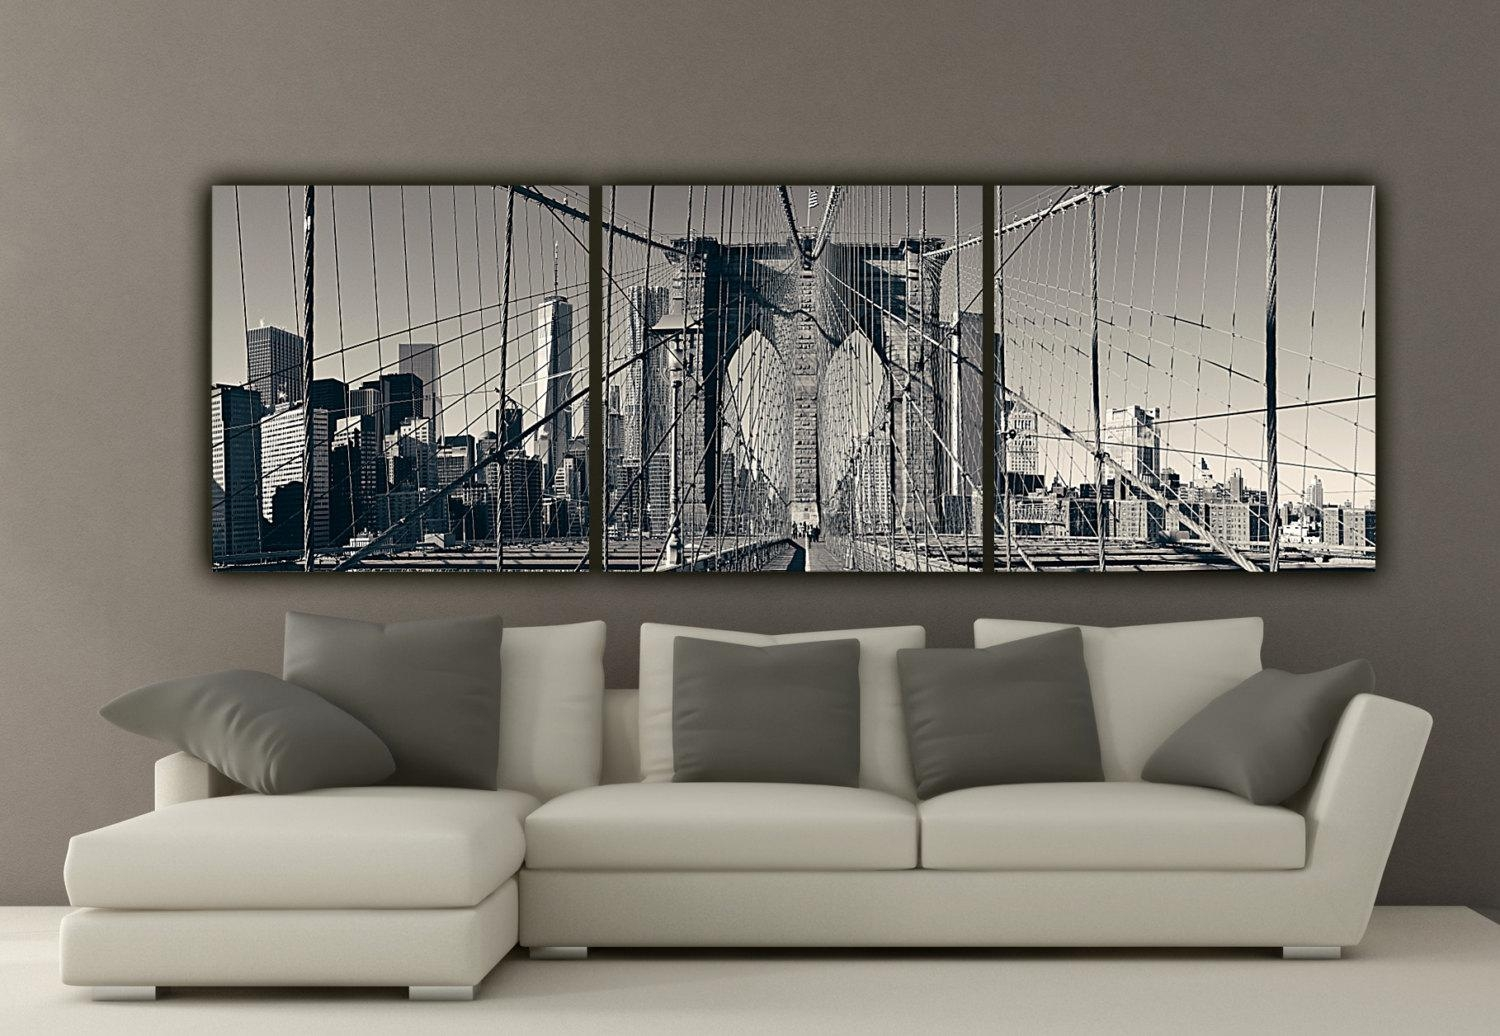 New York Brooklyn Bridge Canvas Wall Art Black And White New For Huge Wall Art Canvas (Image 13 of 20)